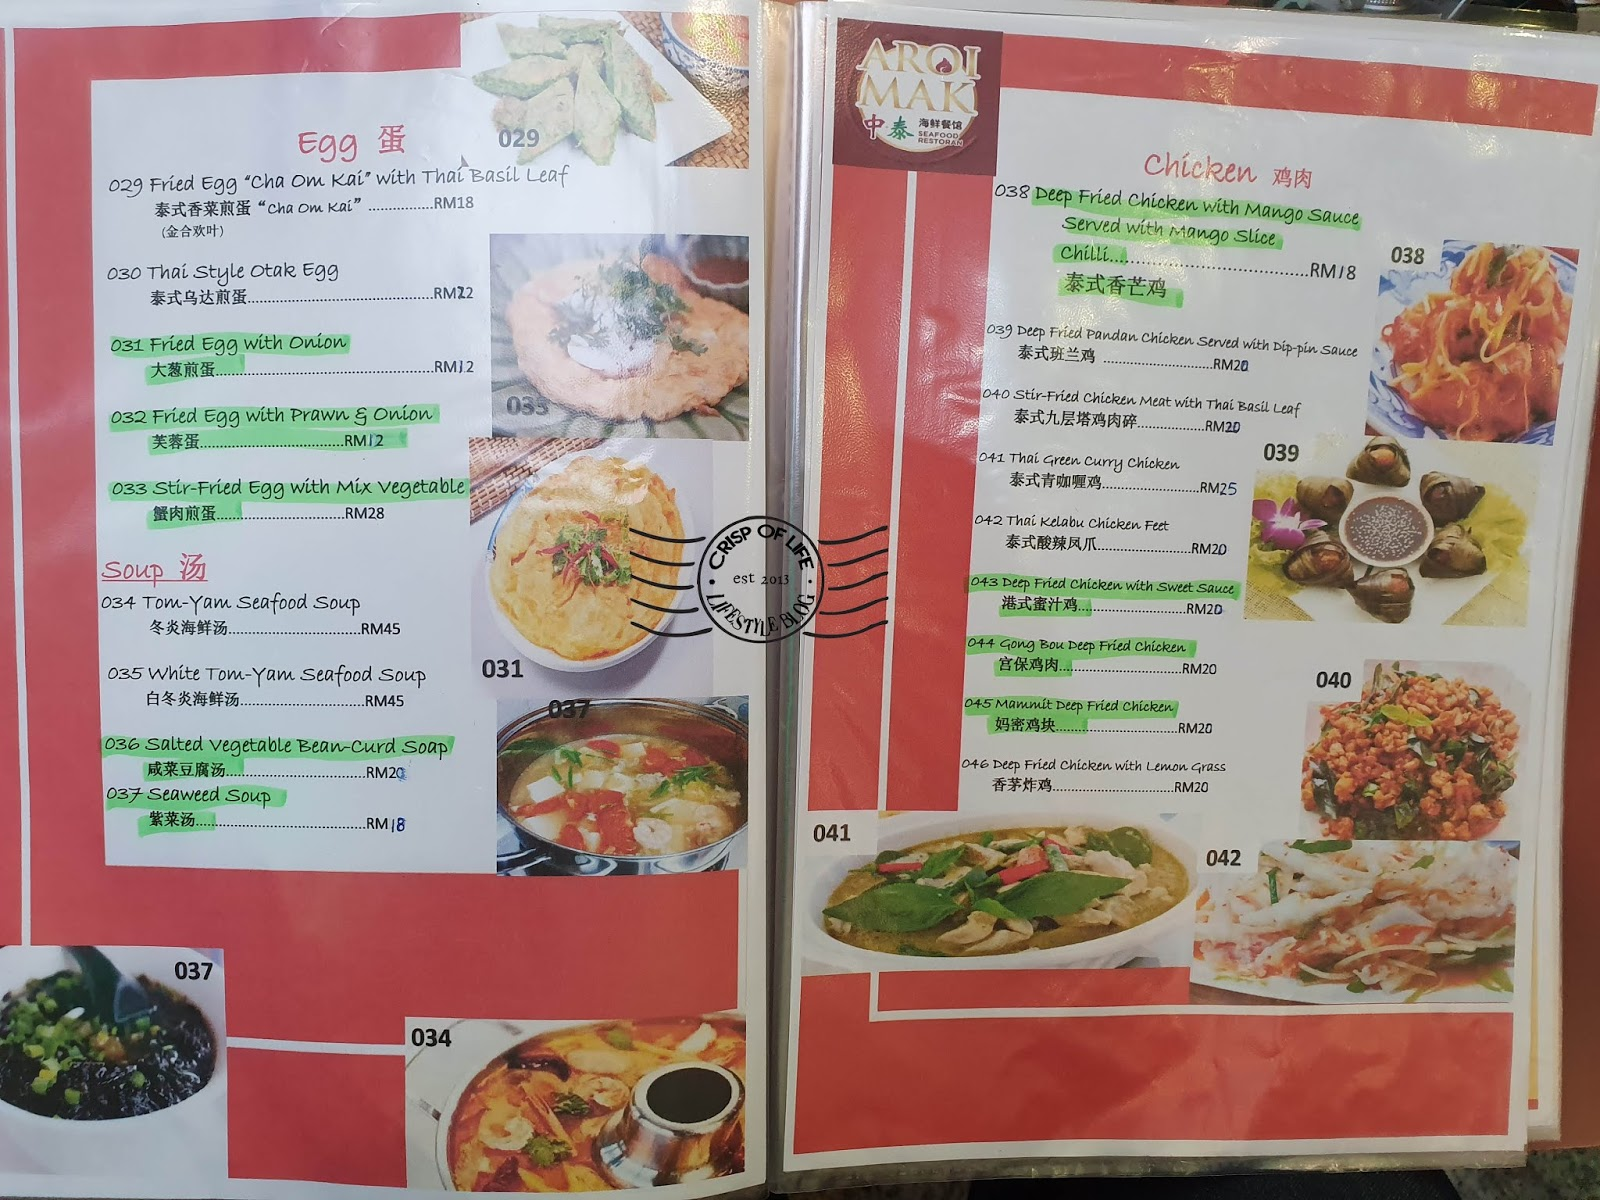 Super Seafood Platter for RM 666 for 10 pax @ Aroi Mak Thai Food Restaurant 中泰海鲜料理